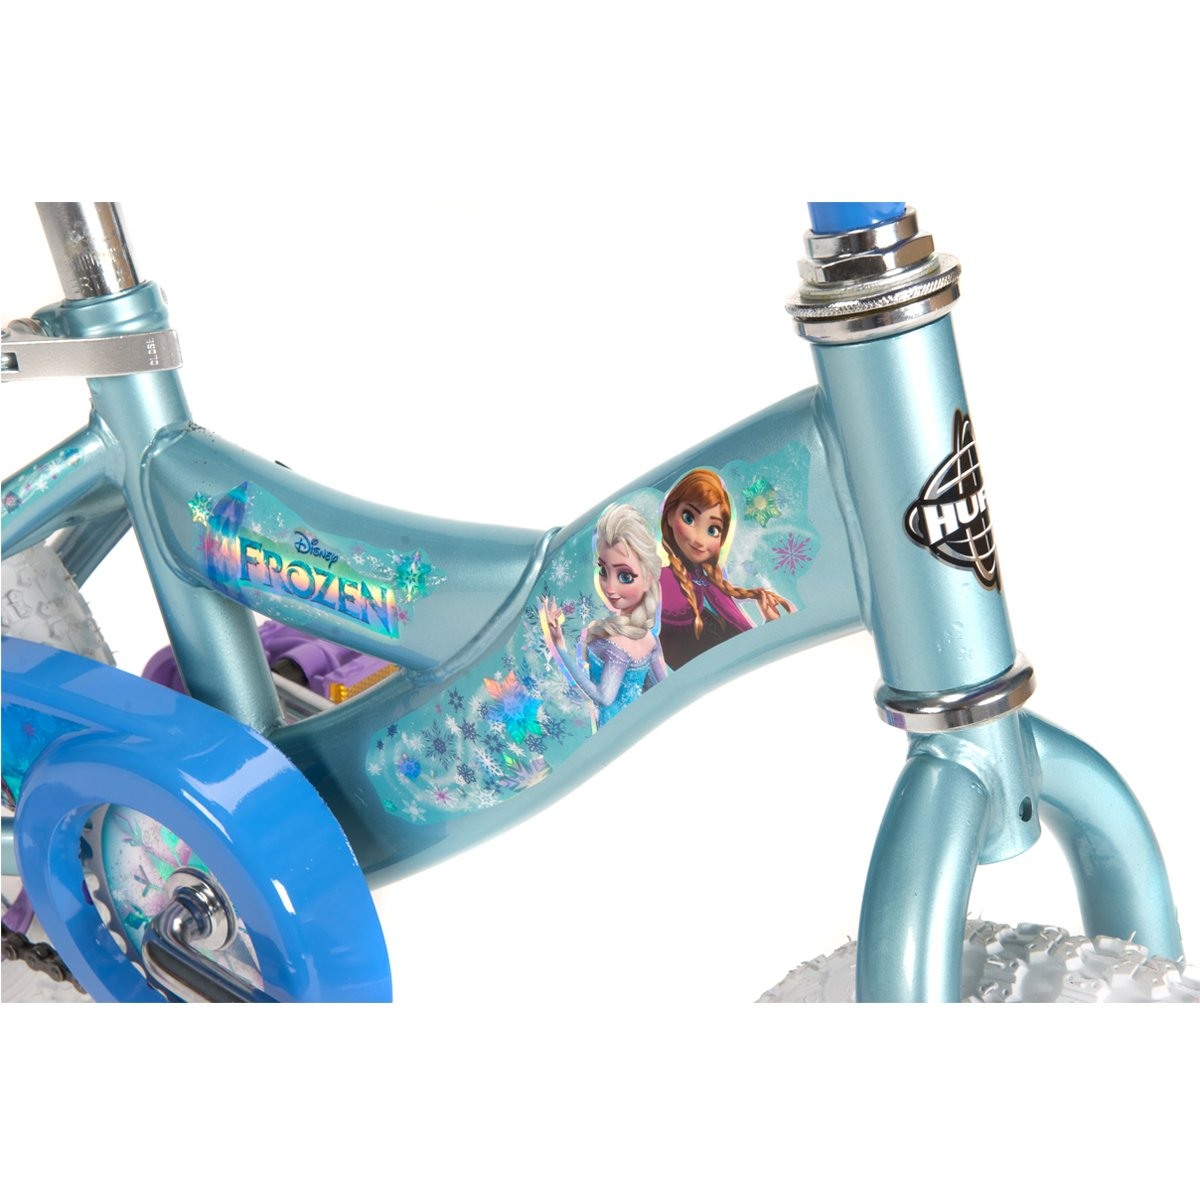 Disney Frozen 12 Inch Bike By Huffy Recommended For